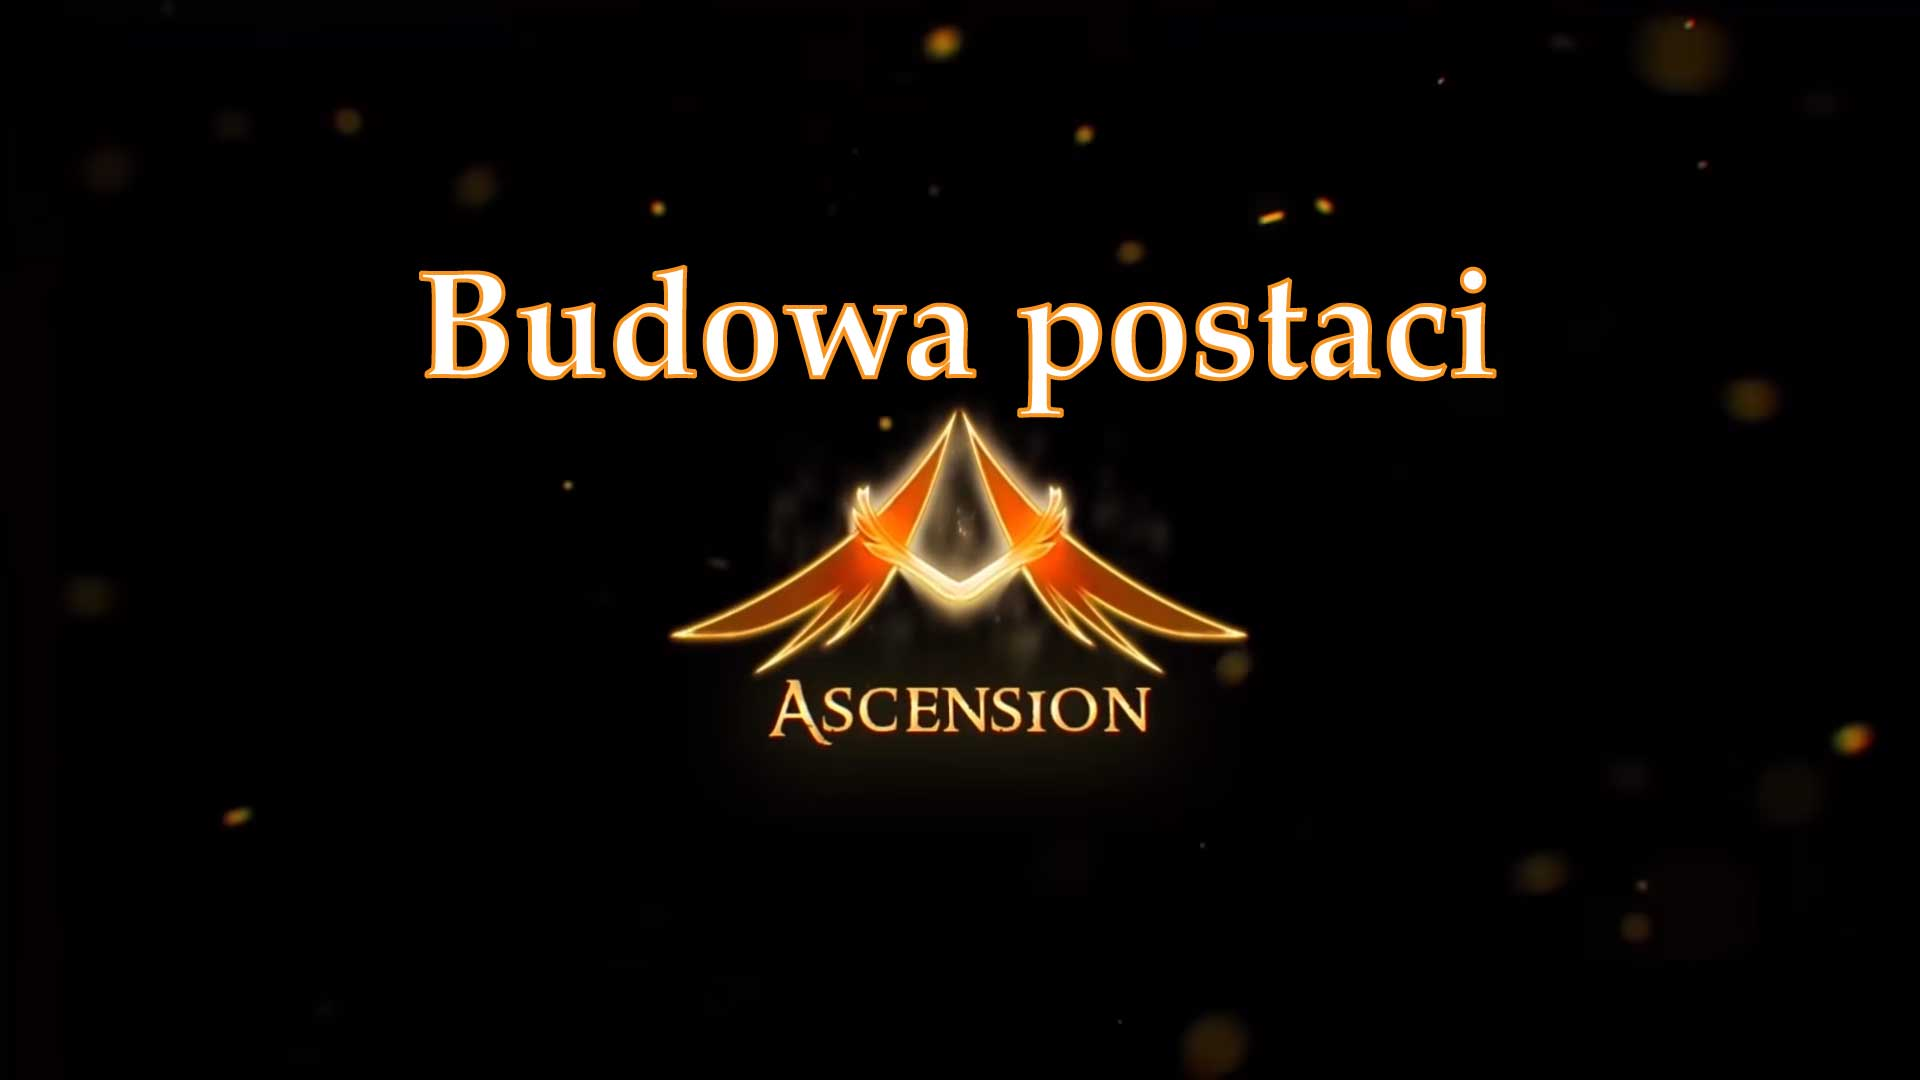 Budowa postaci – World of Warcraft Ascension